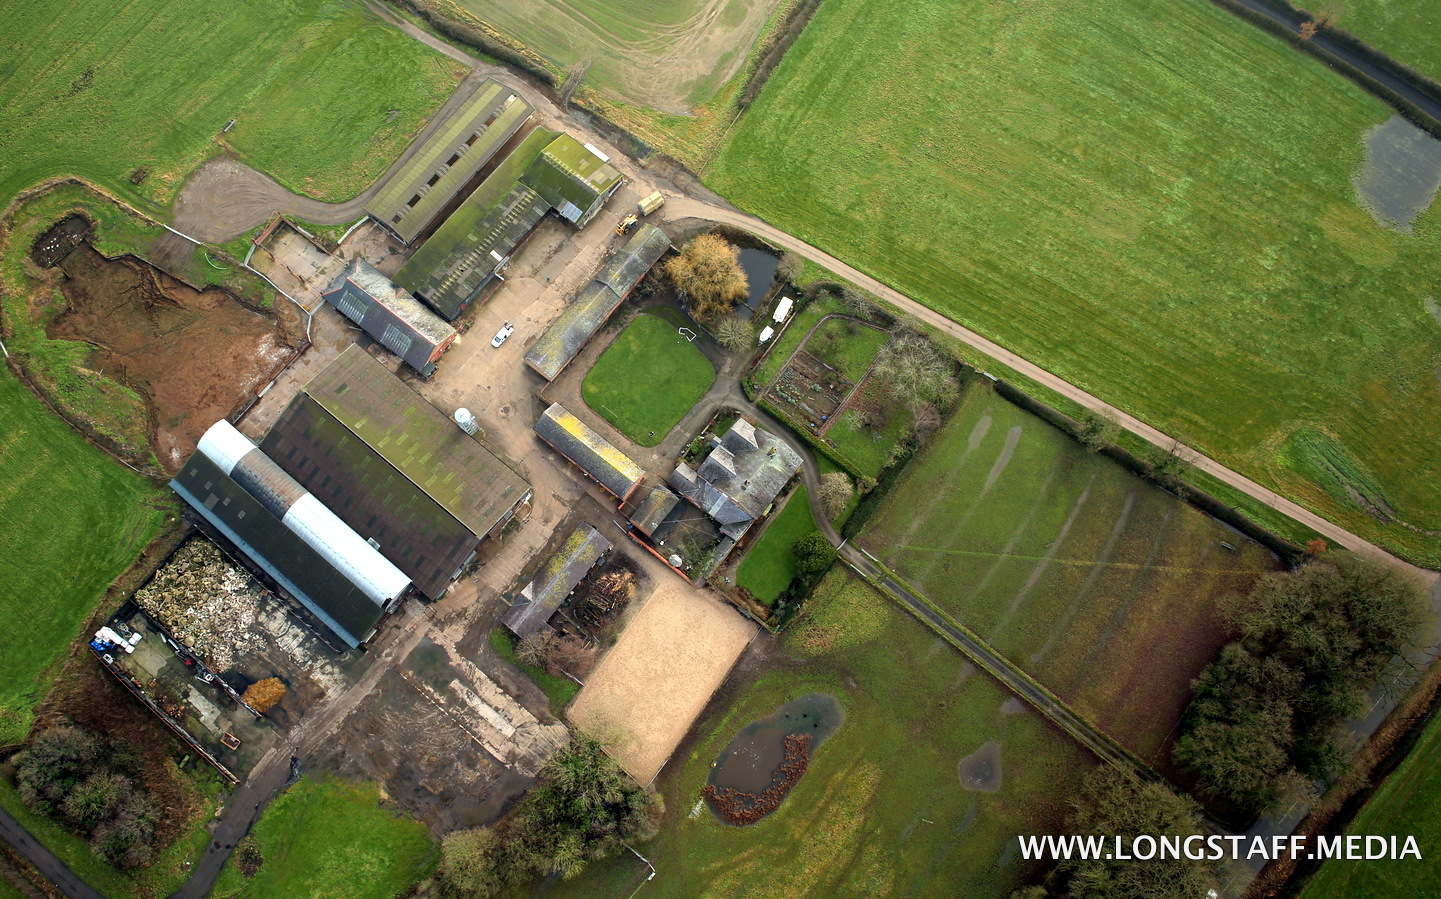 Drone-farm-photograph-longstaff-media-Wales.JPG#asset:474